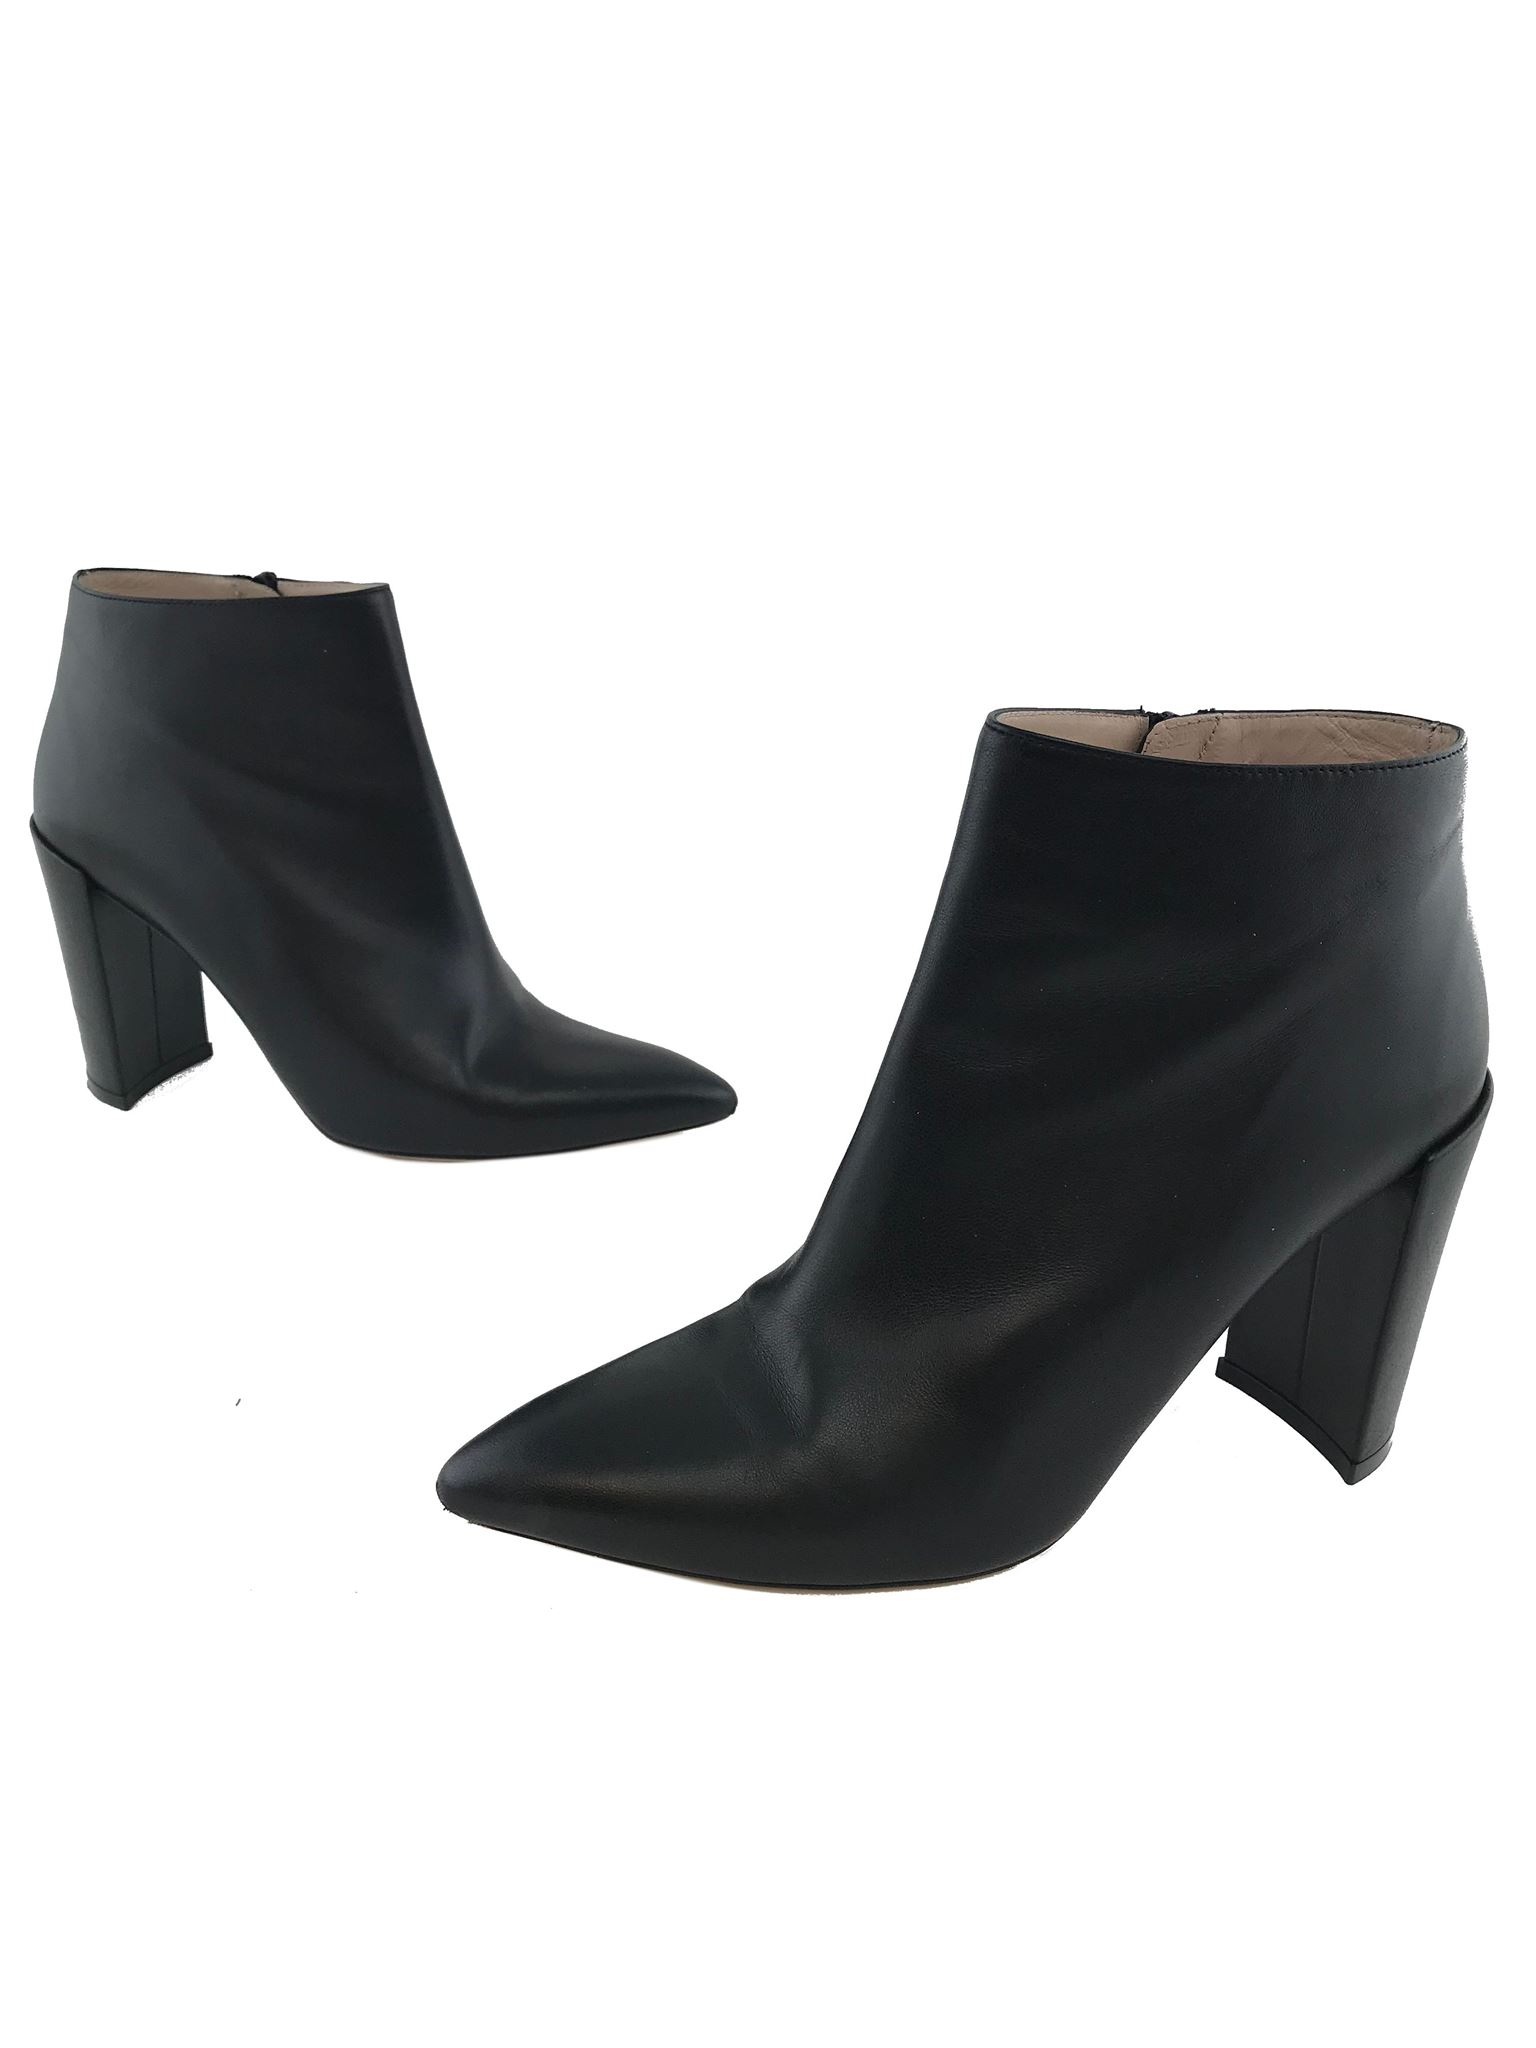 c85cd5d0bdc Stuart Weitzman Block-Heel Leather Ankle Bootie Size 9. Liquid error  Index  was out of range. Must be non-negative and less than the size of the  collection.